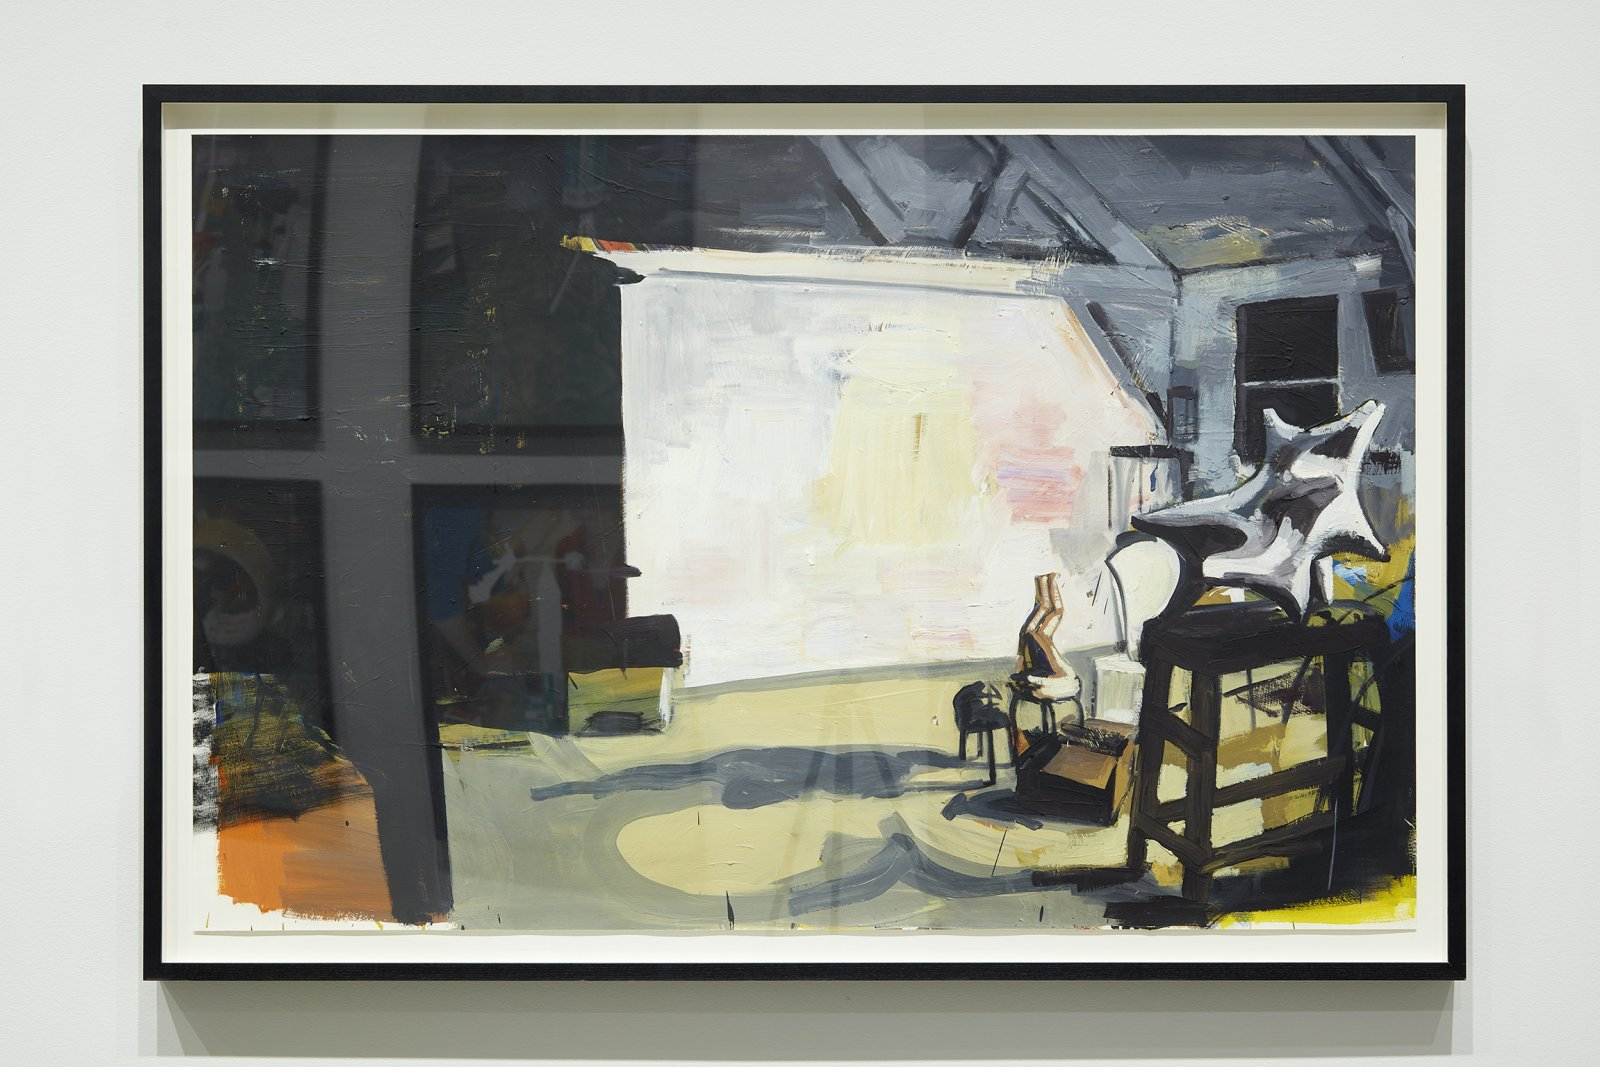 Damian Moppett, Acrobat and Plaster Sculpture in Studio, 2007, oil on paper, 41 x 60 in. (103 x 152 cm). Installation view, Every Story Has Two Sides, Art Gallery of Alberta, Edmonton, 2016 by Damian Moppett